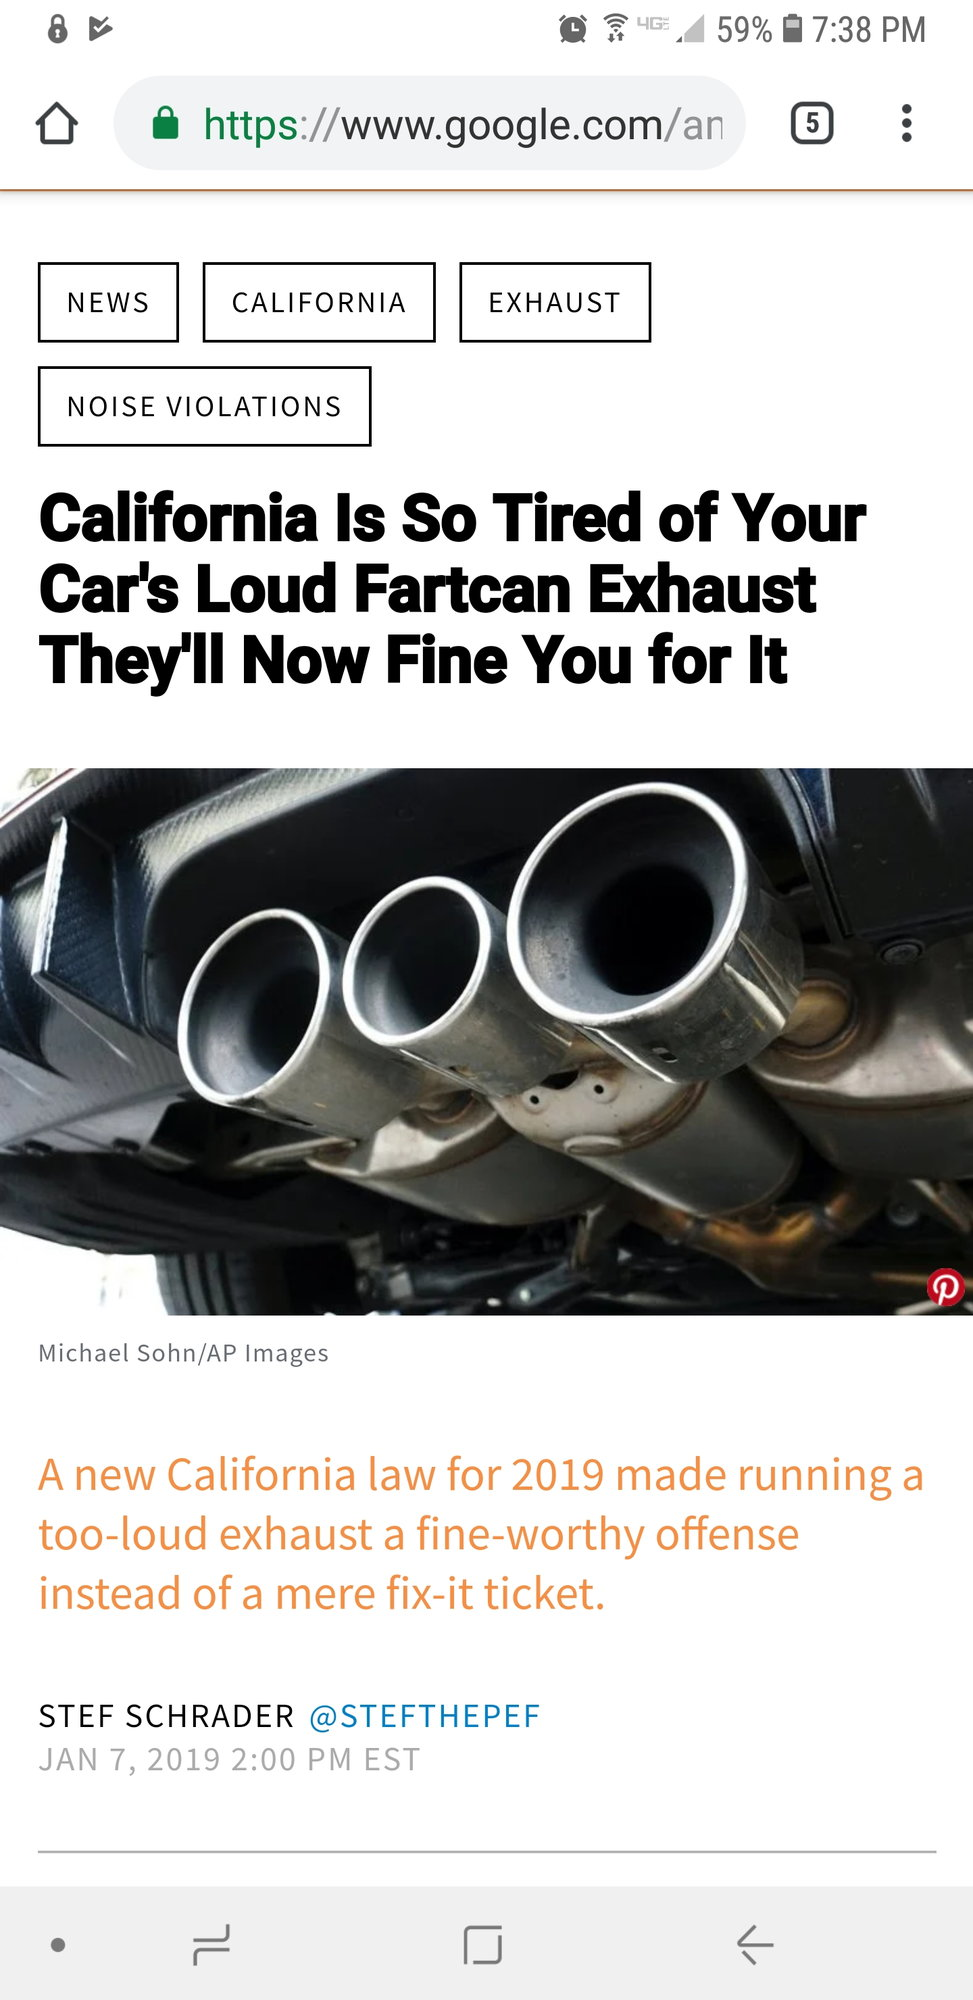 exhaust laws in california